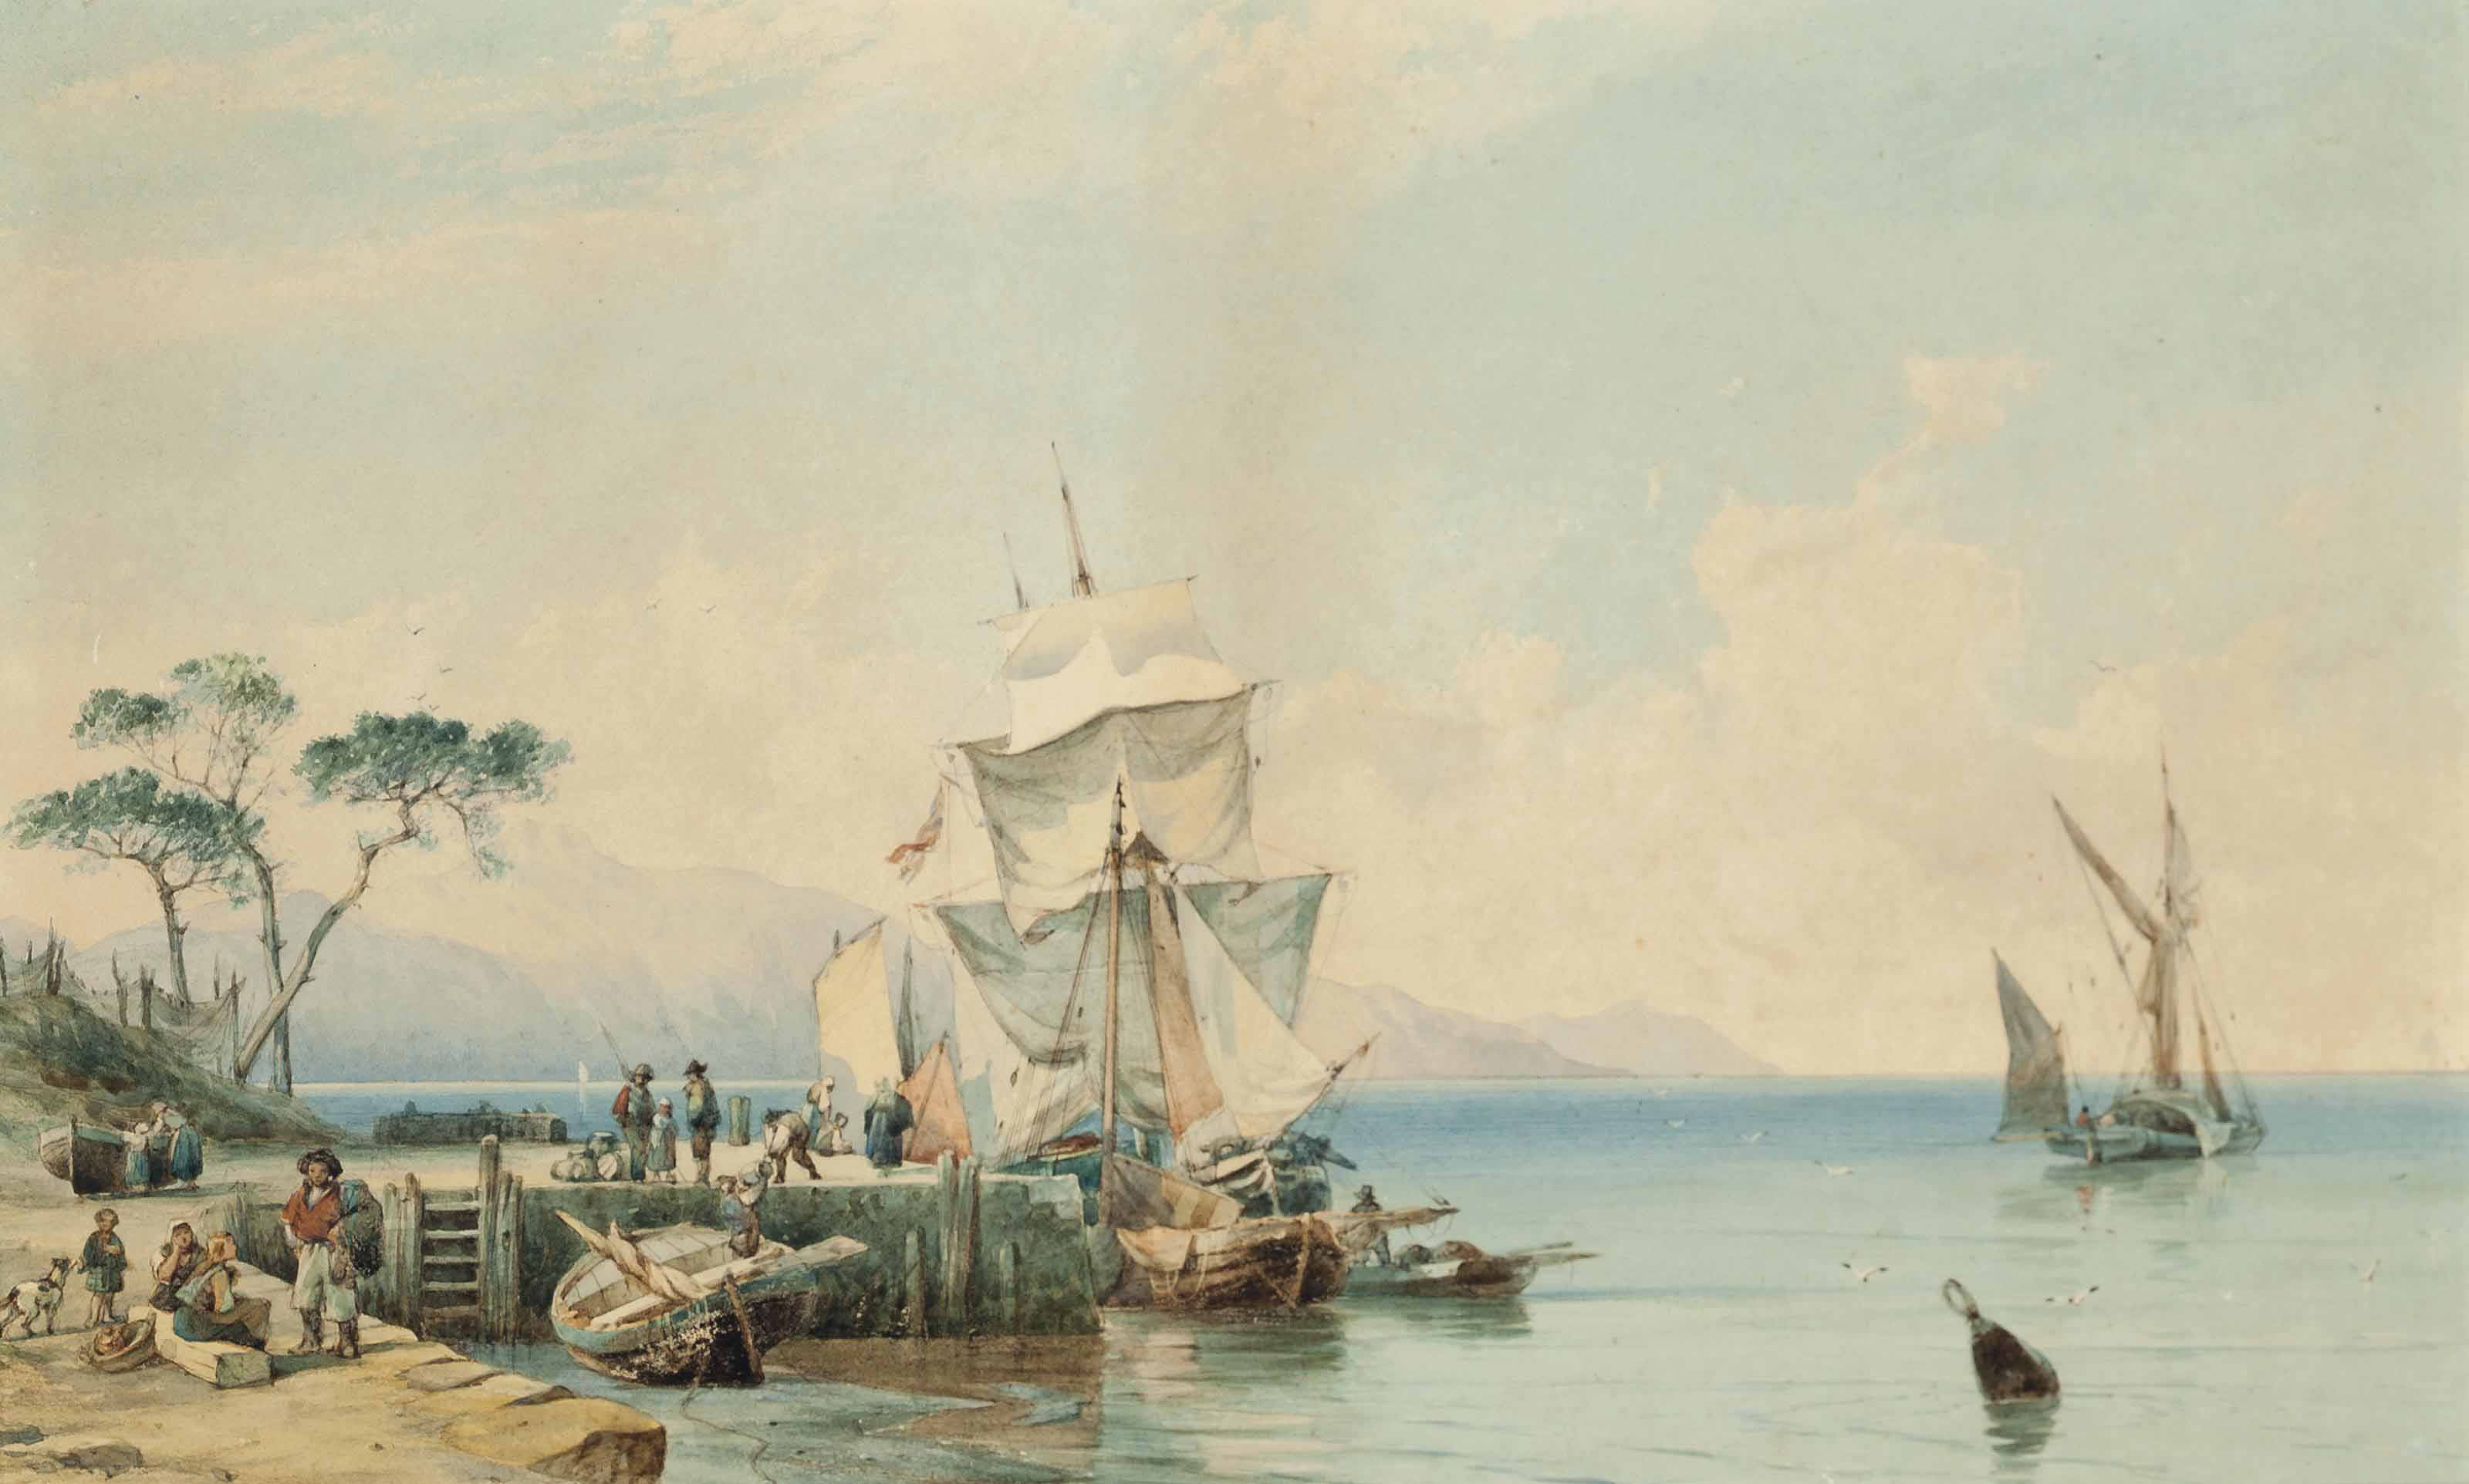 Trading vessels moored alongside a Mediterranean quay with figures loading barrels in the foreground